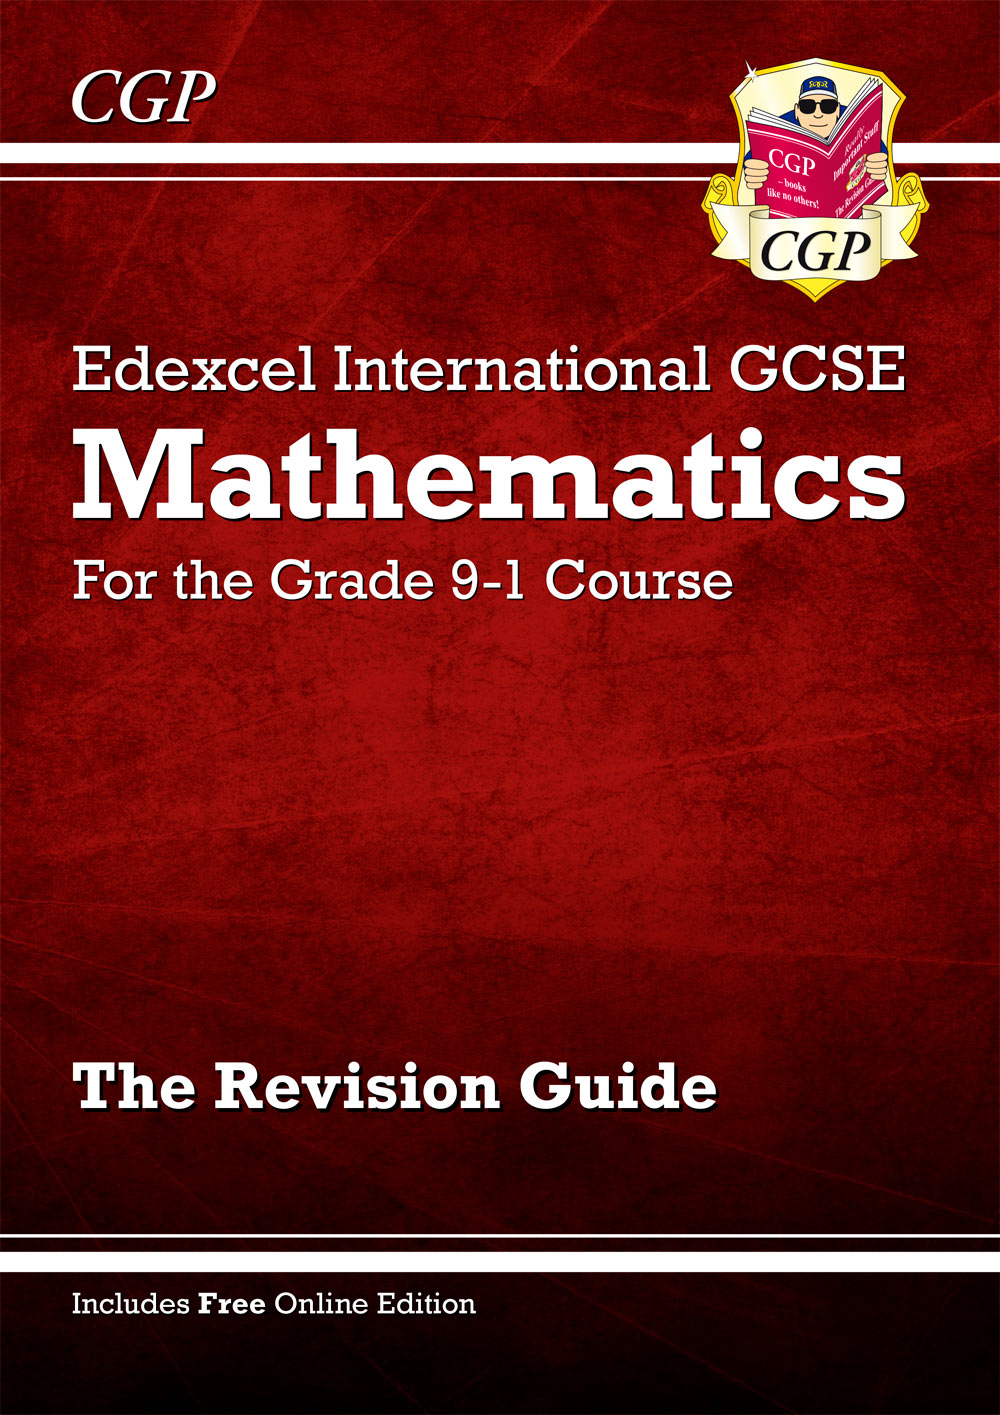 MERI44 - New Edexcel International GCSE Maths Revision Guide - for the Grade 9-1 Course (with Online